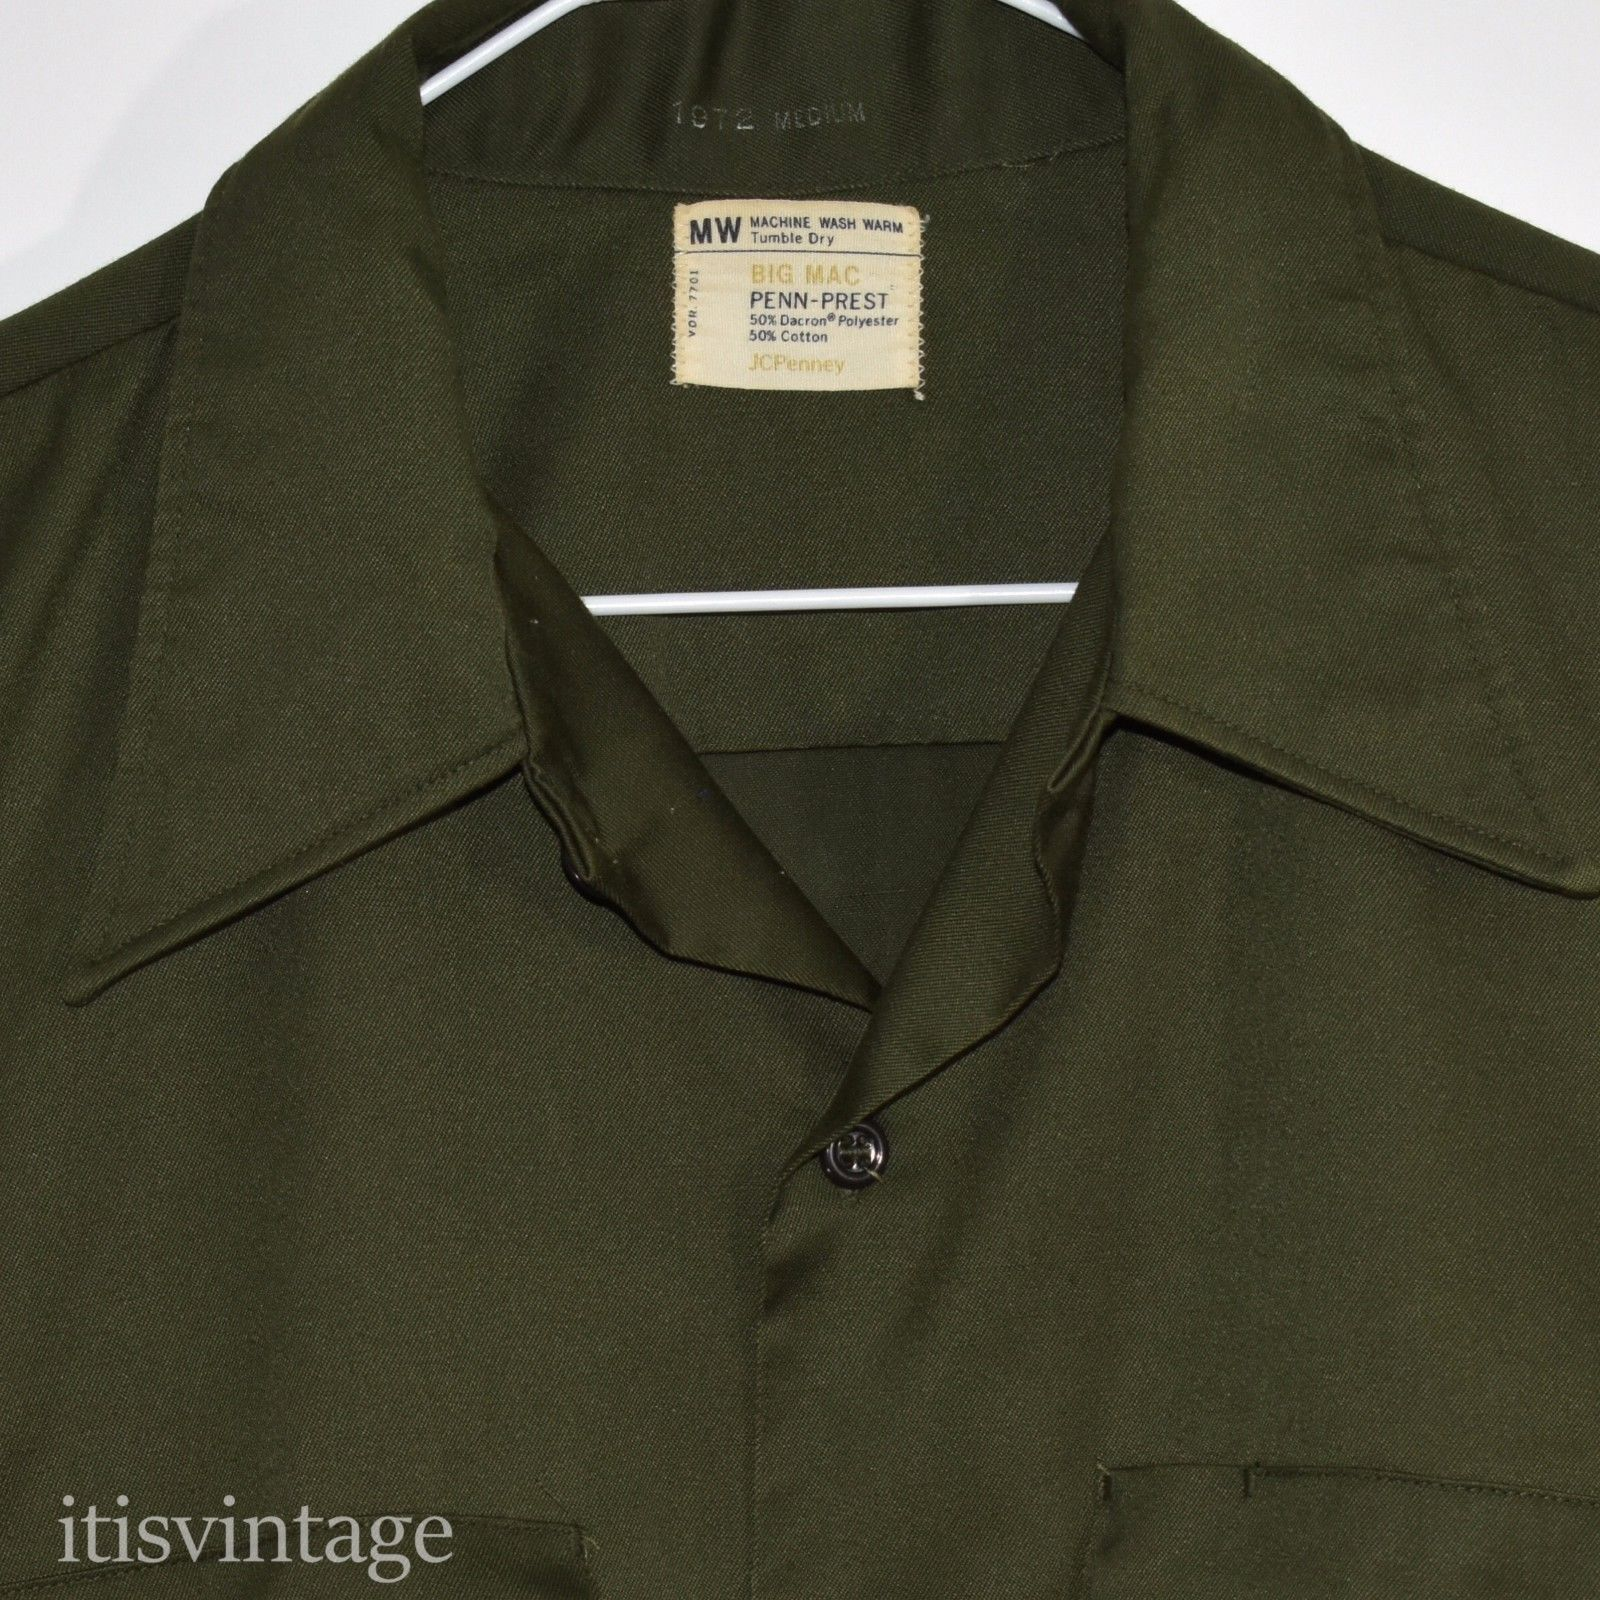 fb03be10d93dc7 Vintage 1972 Big Mac JC Penney Penn-Prest Dark Green Button Front Work Wear  Shirt.